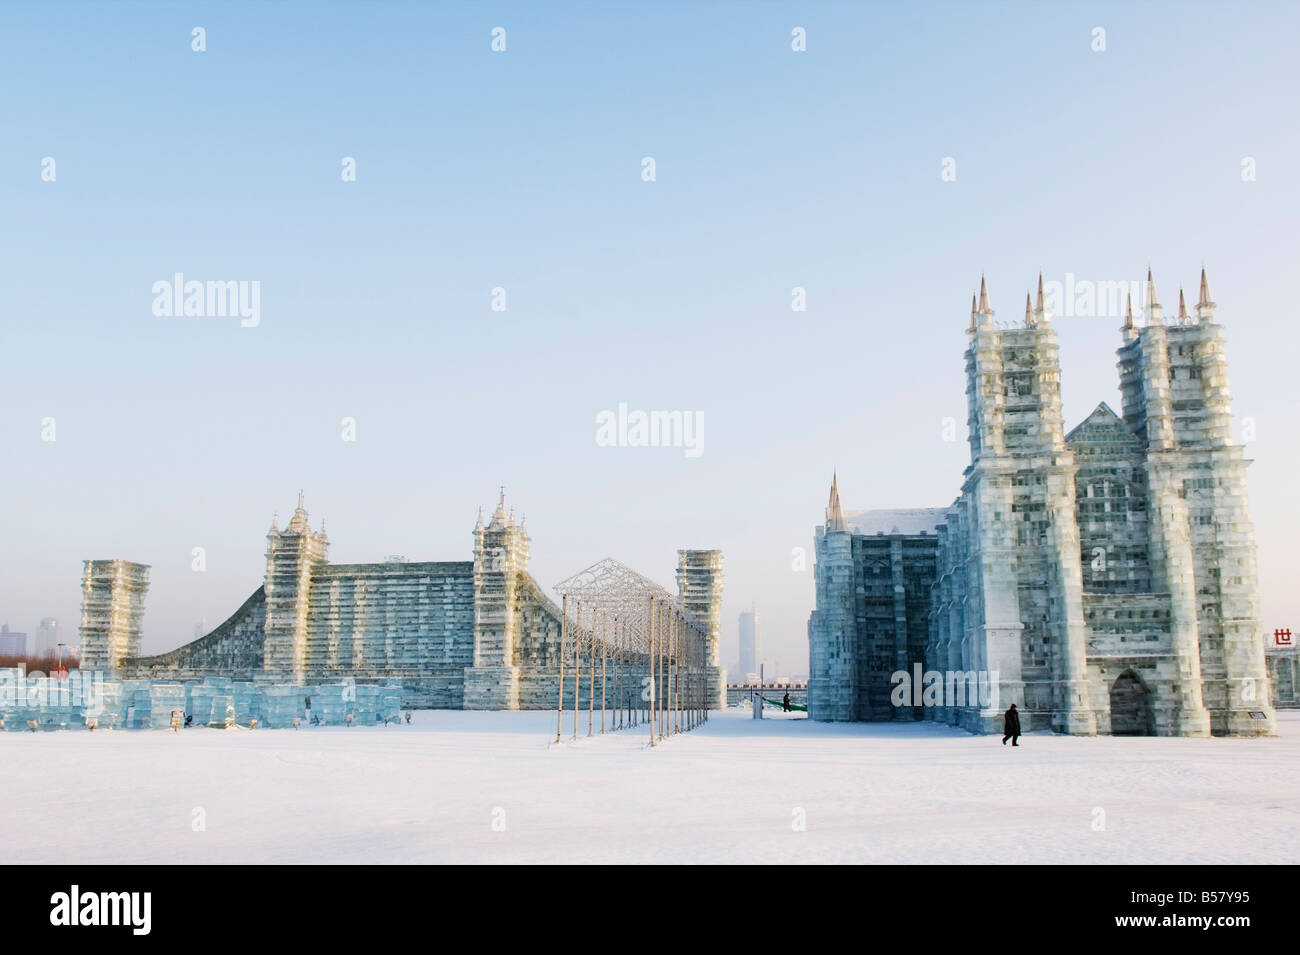 Ice sculptures of Notre Dame Cathedral and London's Tower Bridge at the Ice Lantern Festival, Heilongjiang Province, - Stock Image